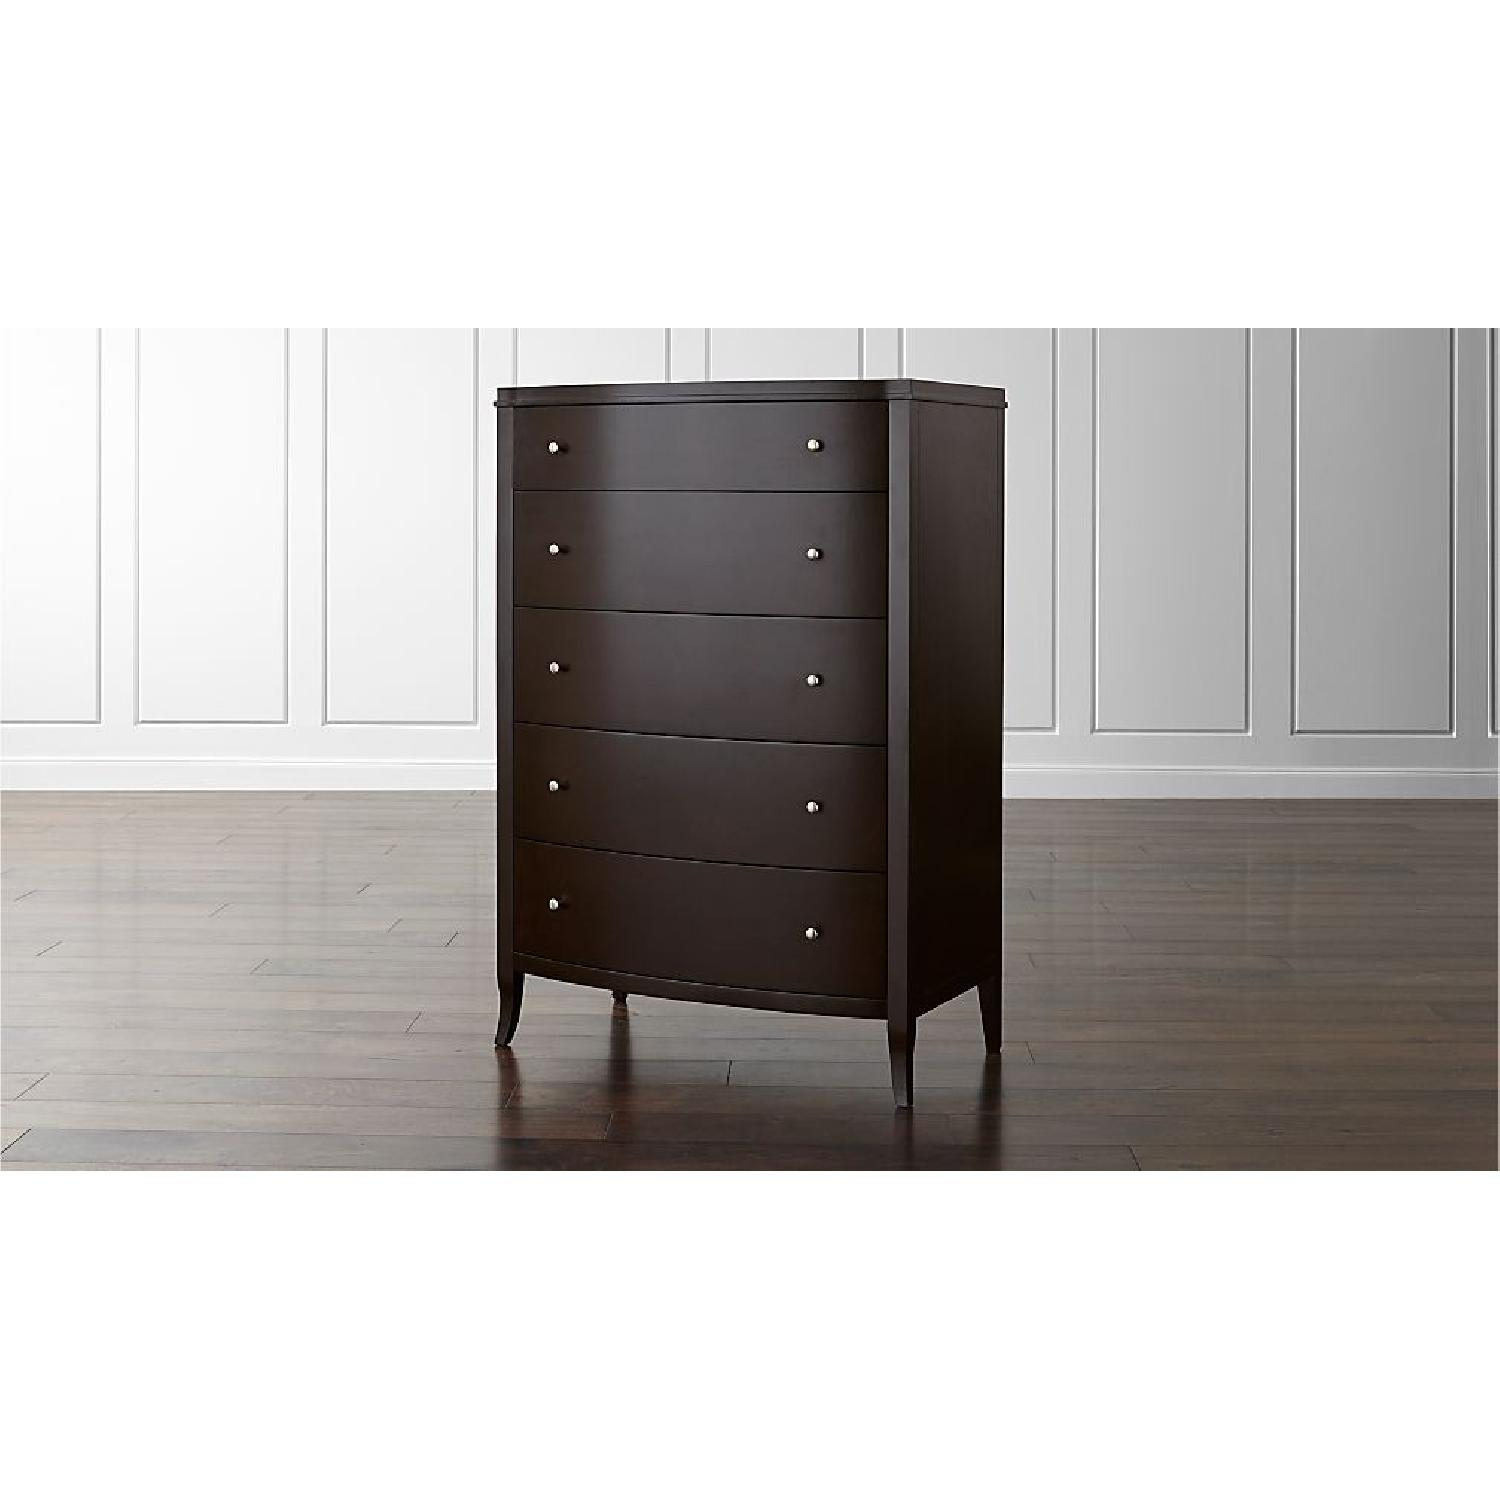 Crate & Barrel Colette Espresso 5-Drawer Chest - image-1